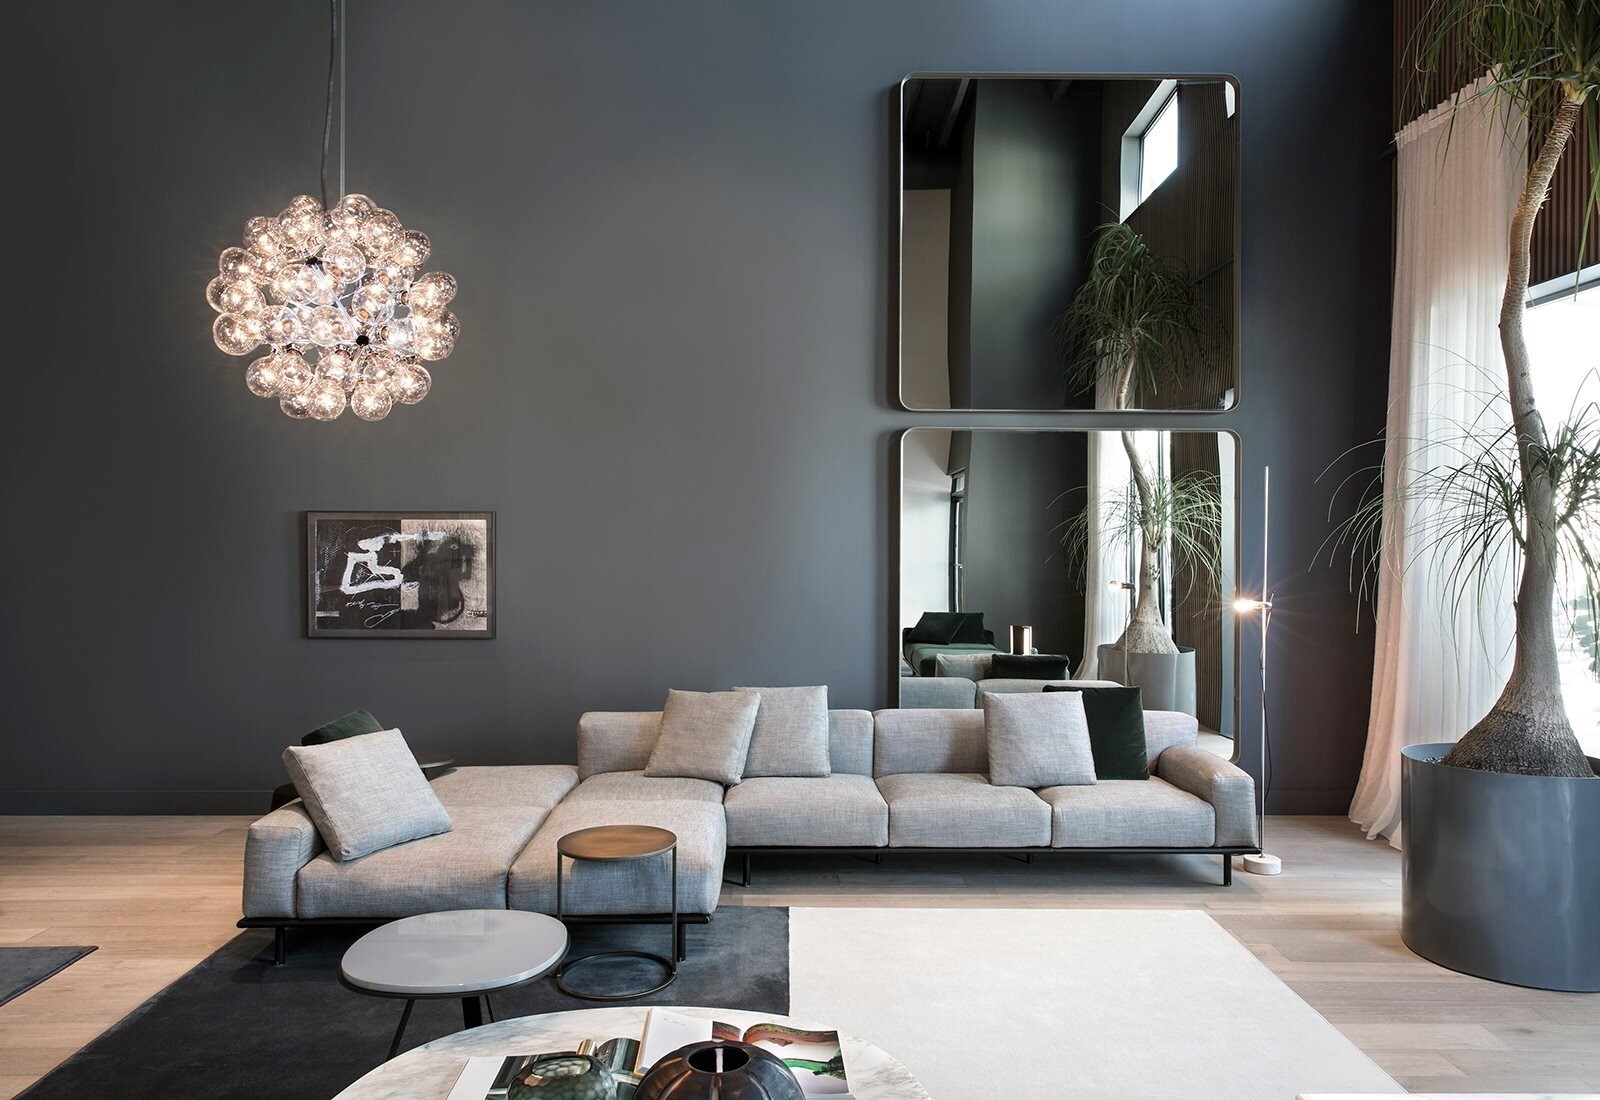 Modernize Your Room With Contemporary Interior Design Accessories And Decorative Elements By Cheetah Design Medium